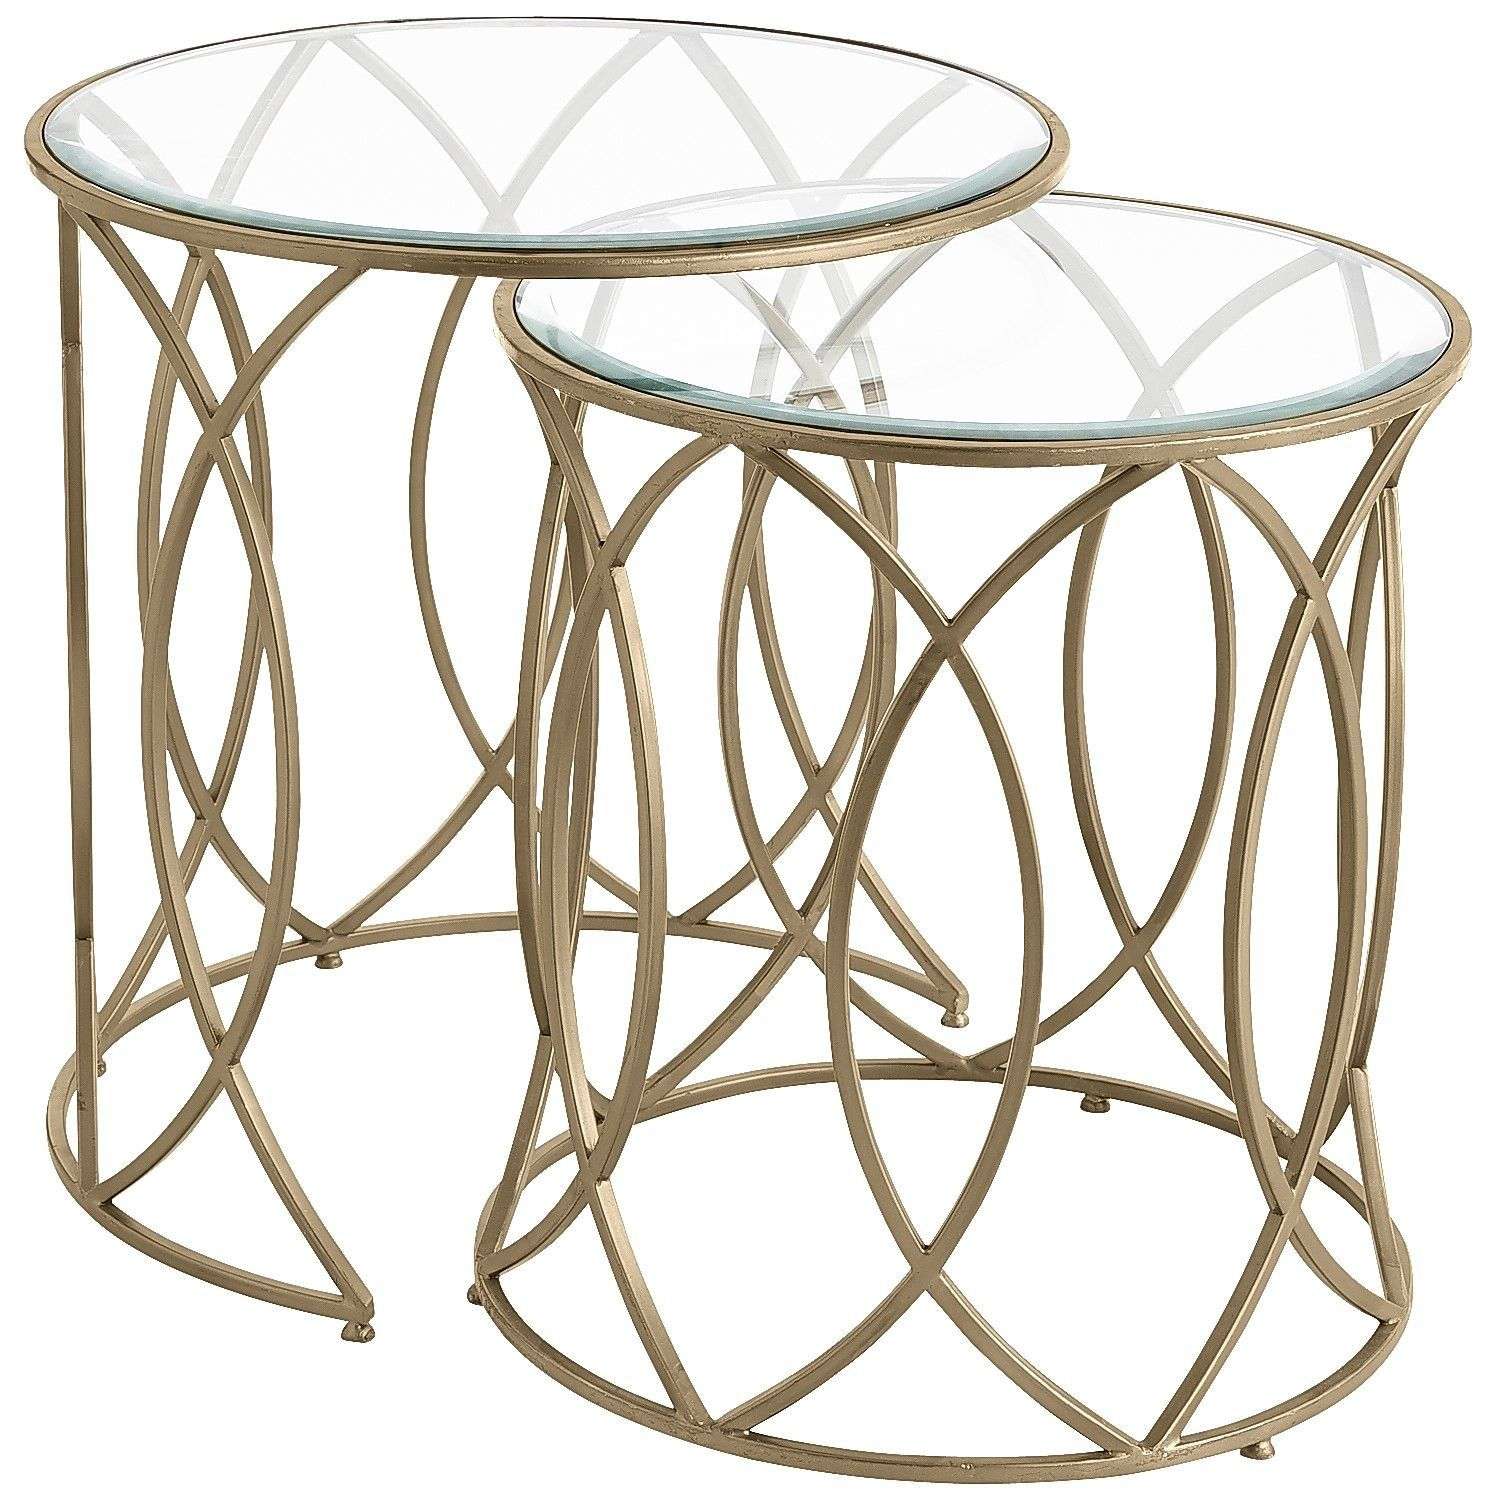 elana bronze iron round nesting tables home pier accent living room side imports small brass coffee table white half moon wooden bar chairside end barn door designs glass top